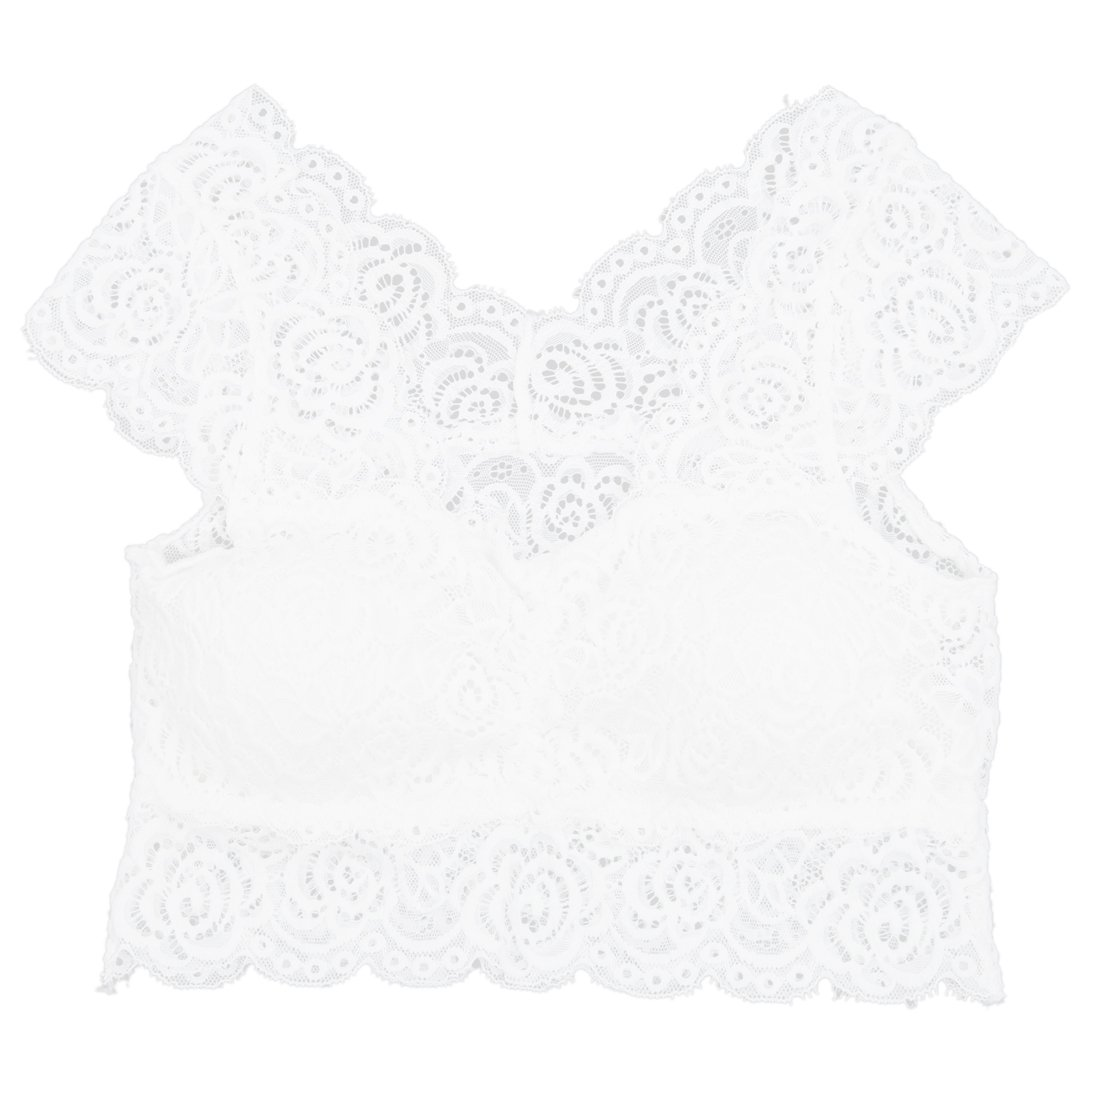 SODIAL(R)Womens Lady Lace Vest Sleep Bra Crop Tops Sports Padded Boob Tube Leisure White 052022